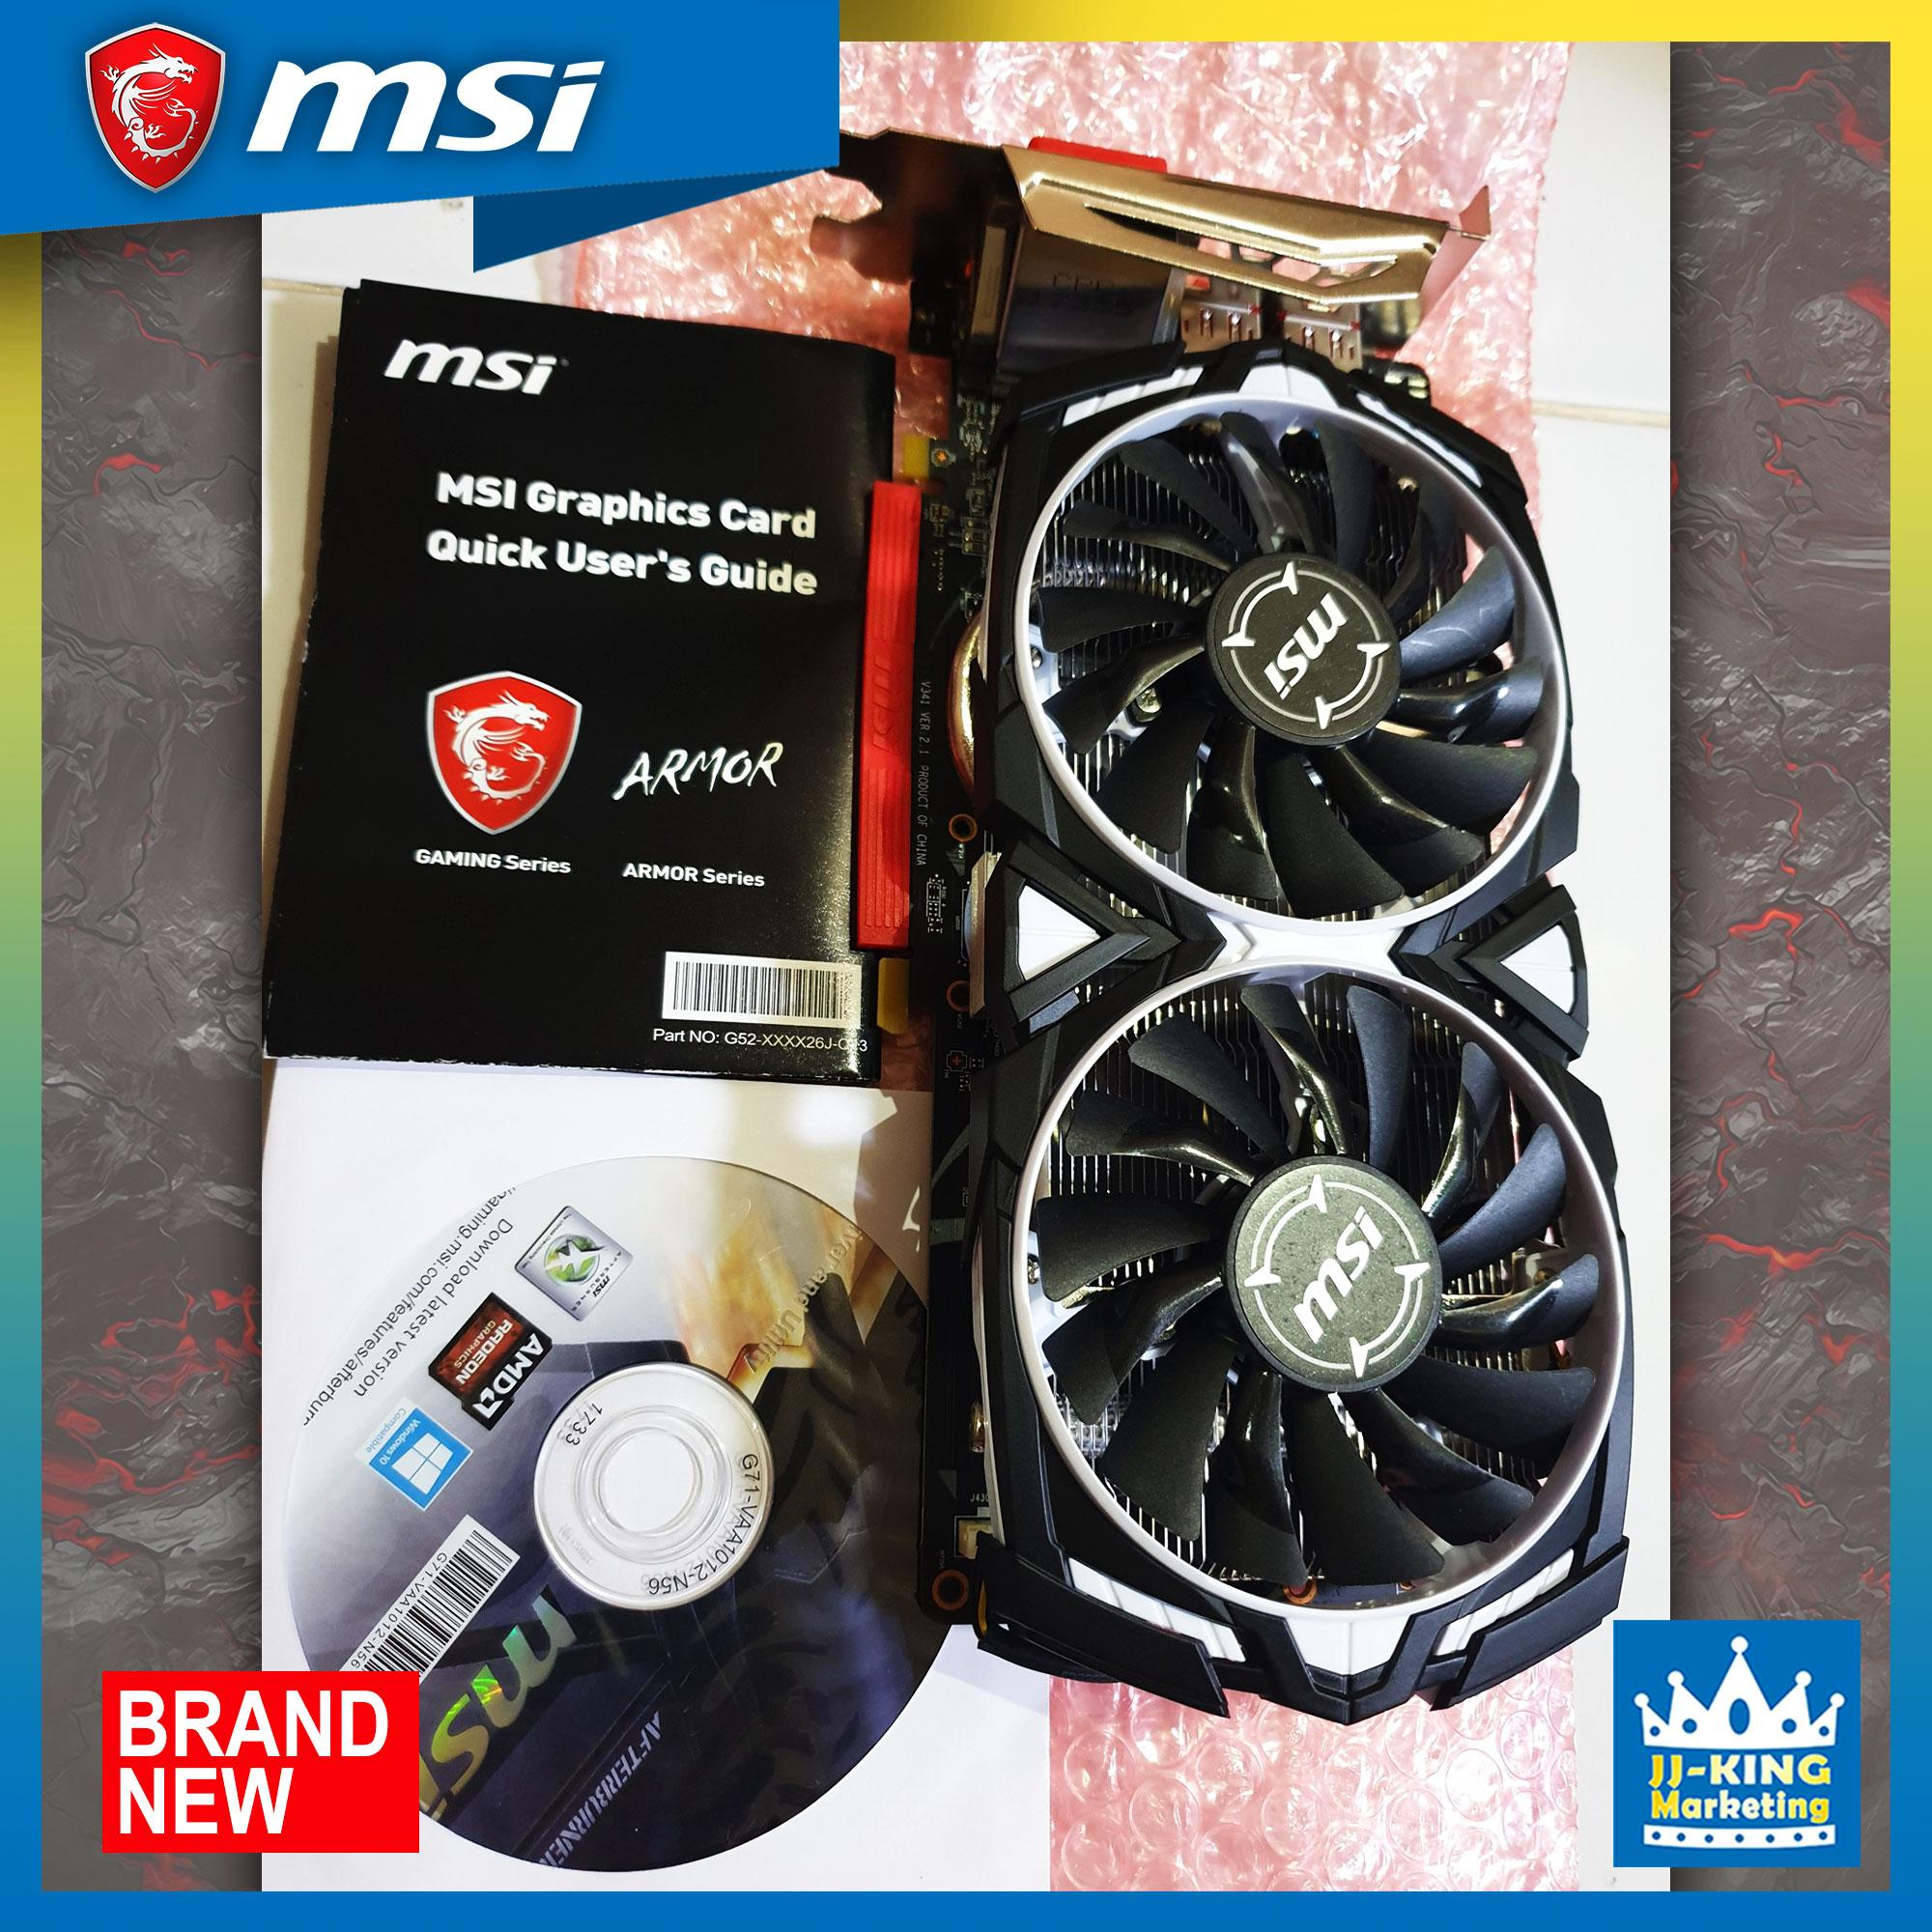 Brand new Msi Gaming Videocard RX 470 ARMOR 8GB DDR5 256bit video card OC /  PUBG /2K19/GRAPHICS ART